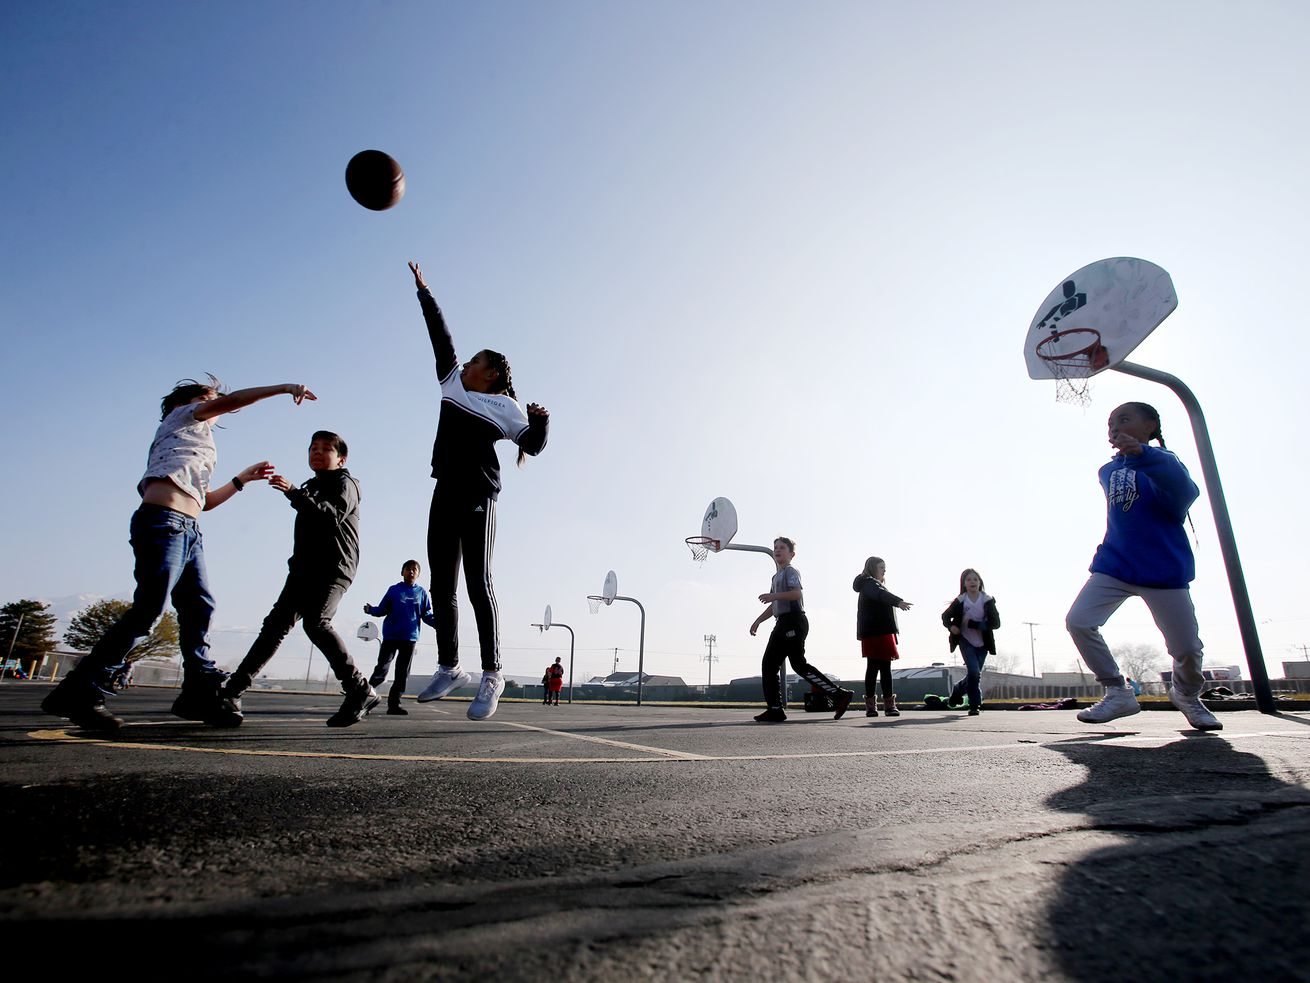 Utah schools could count recess as instructional time under proposed rule change